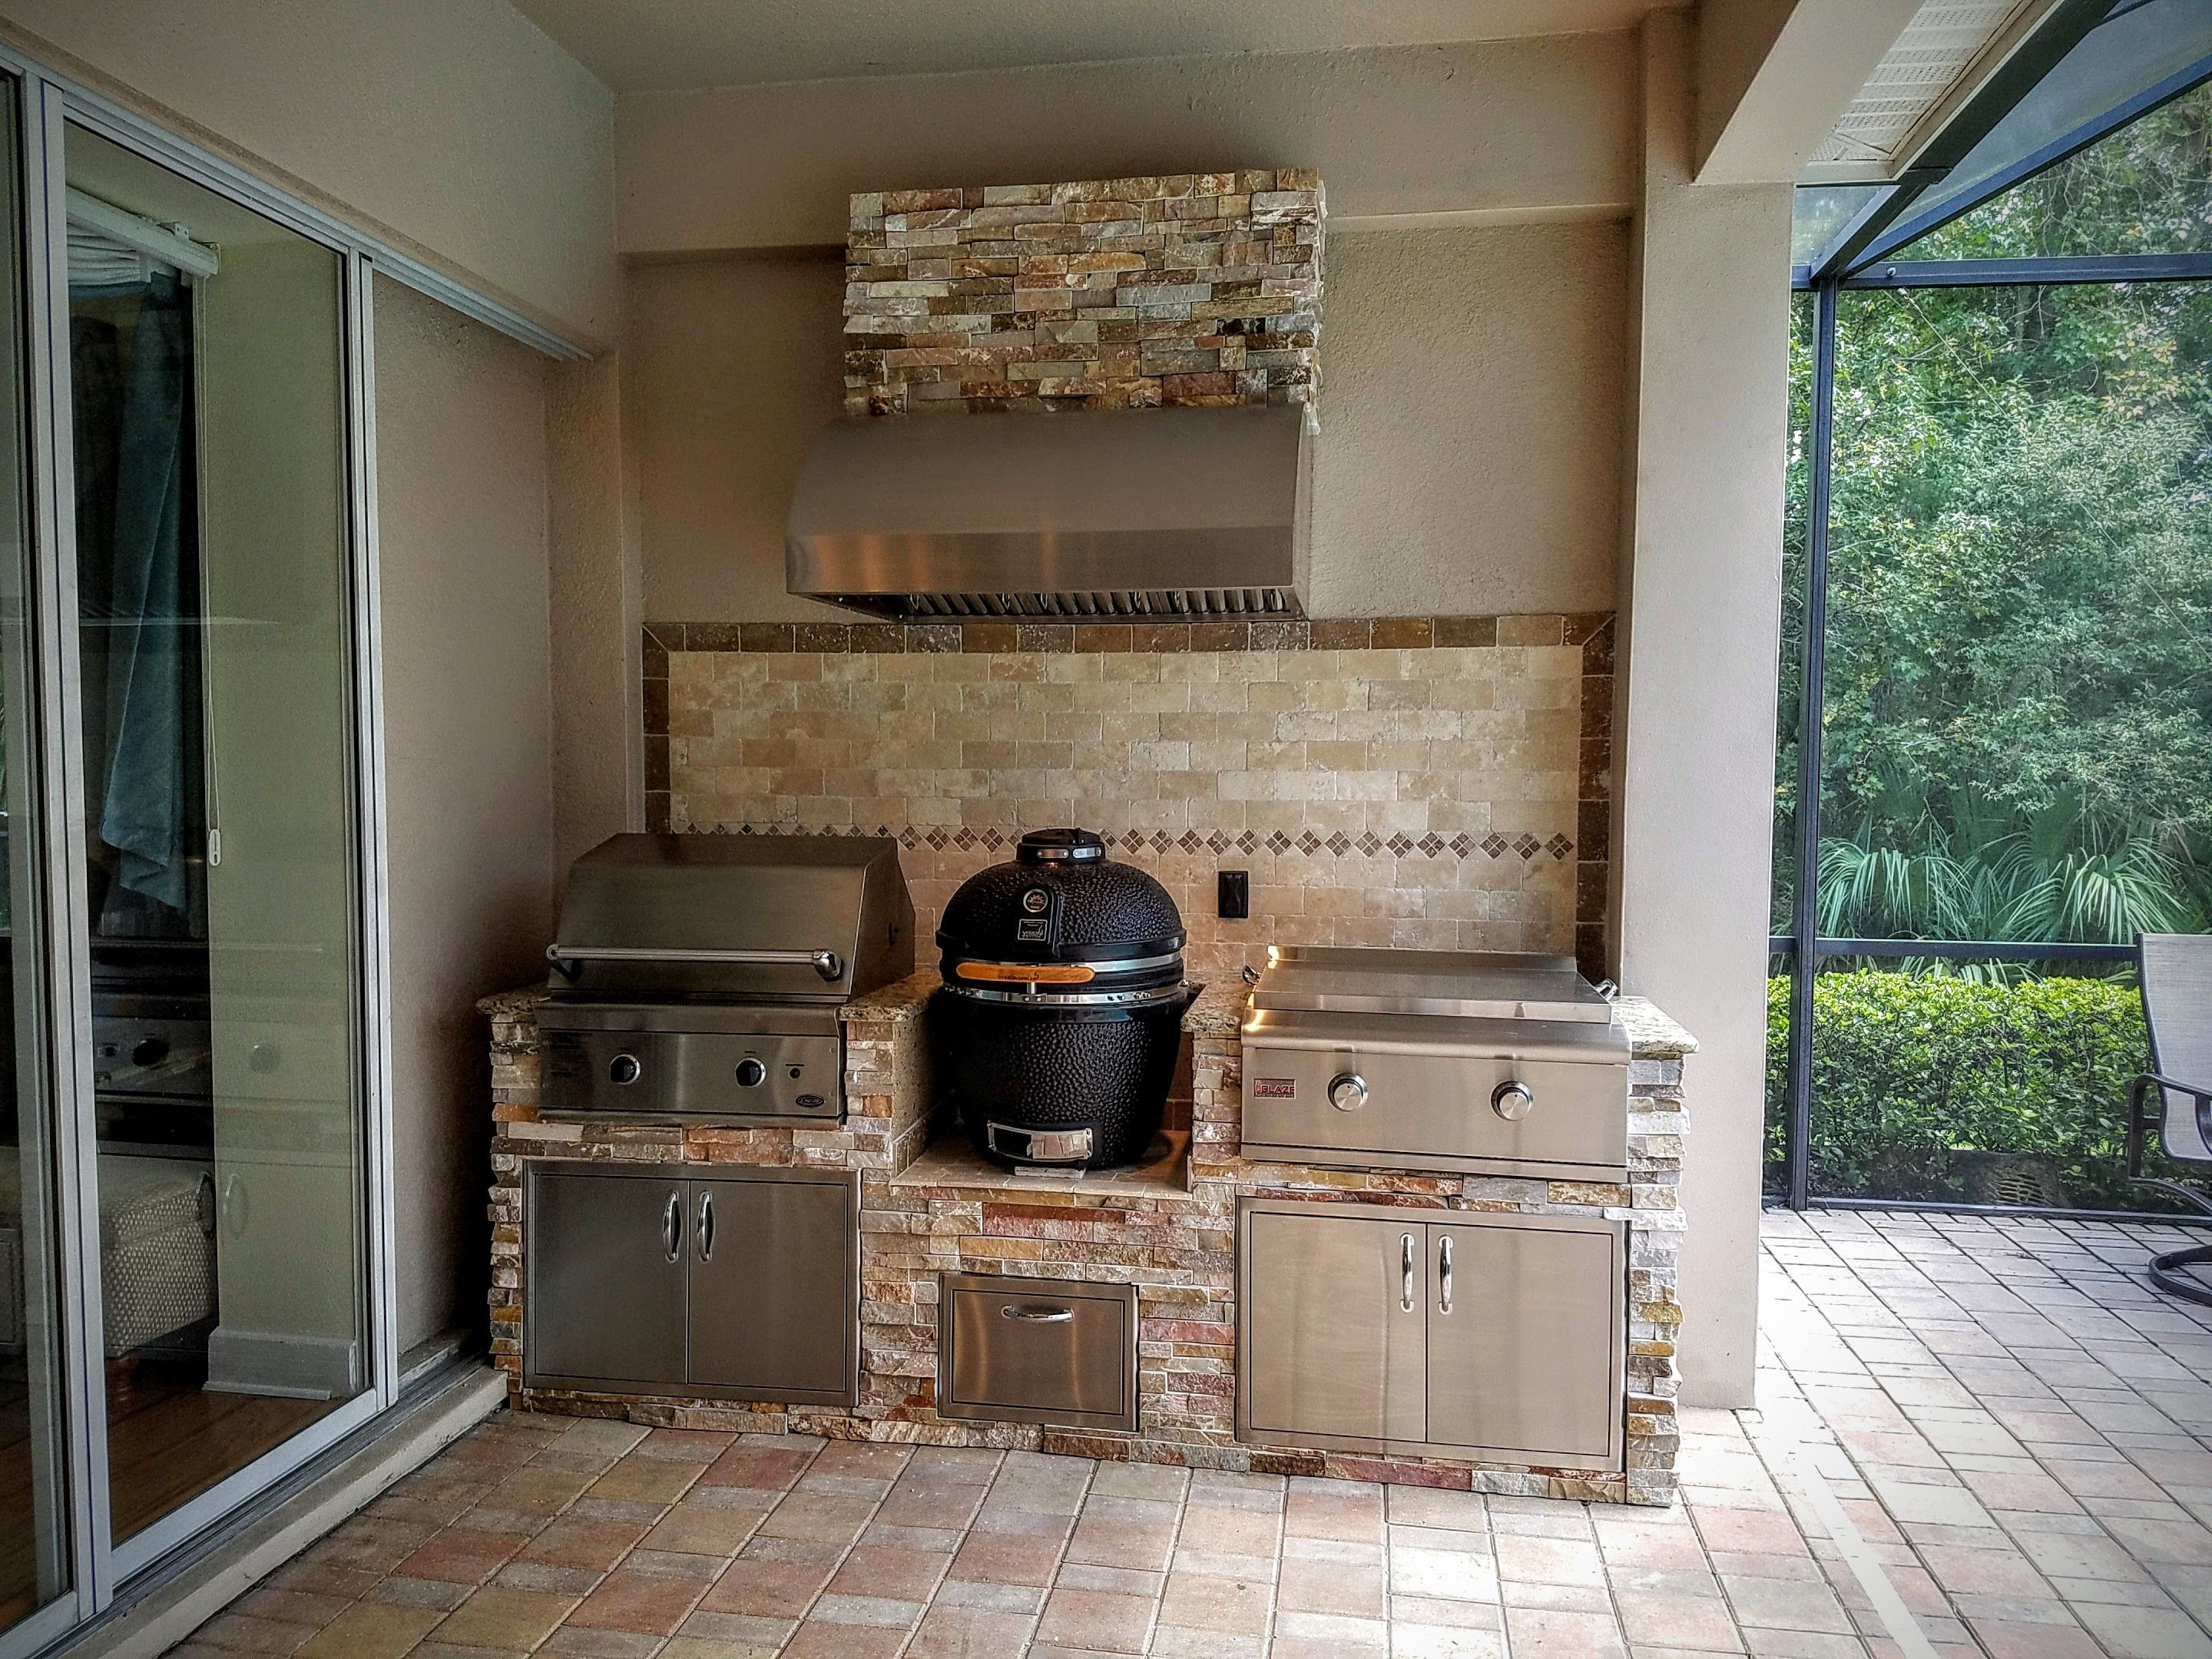 pictures of outdoor kitchen backsplashes | my outdoor speces ...